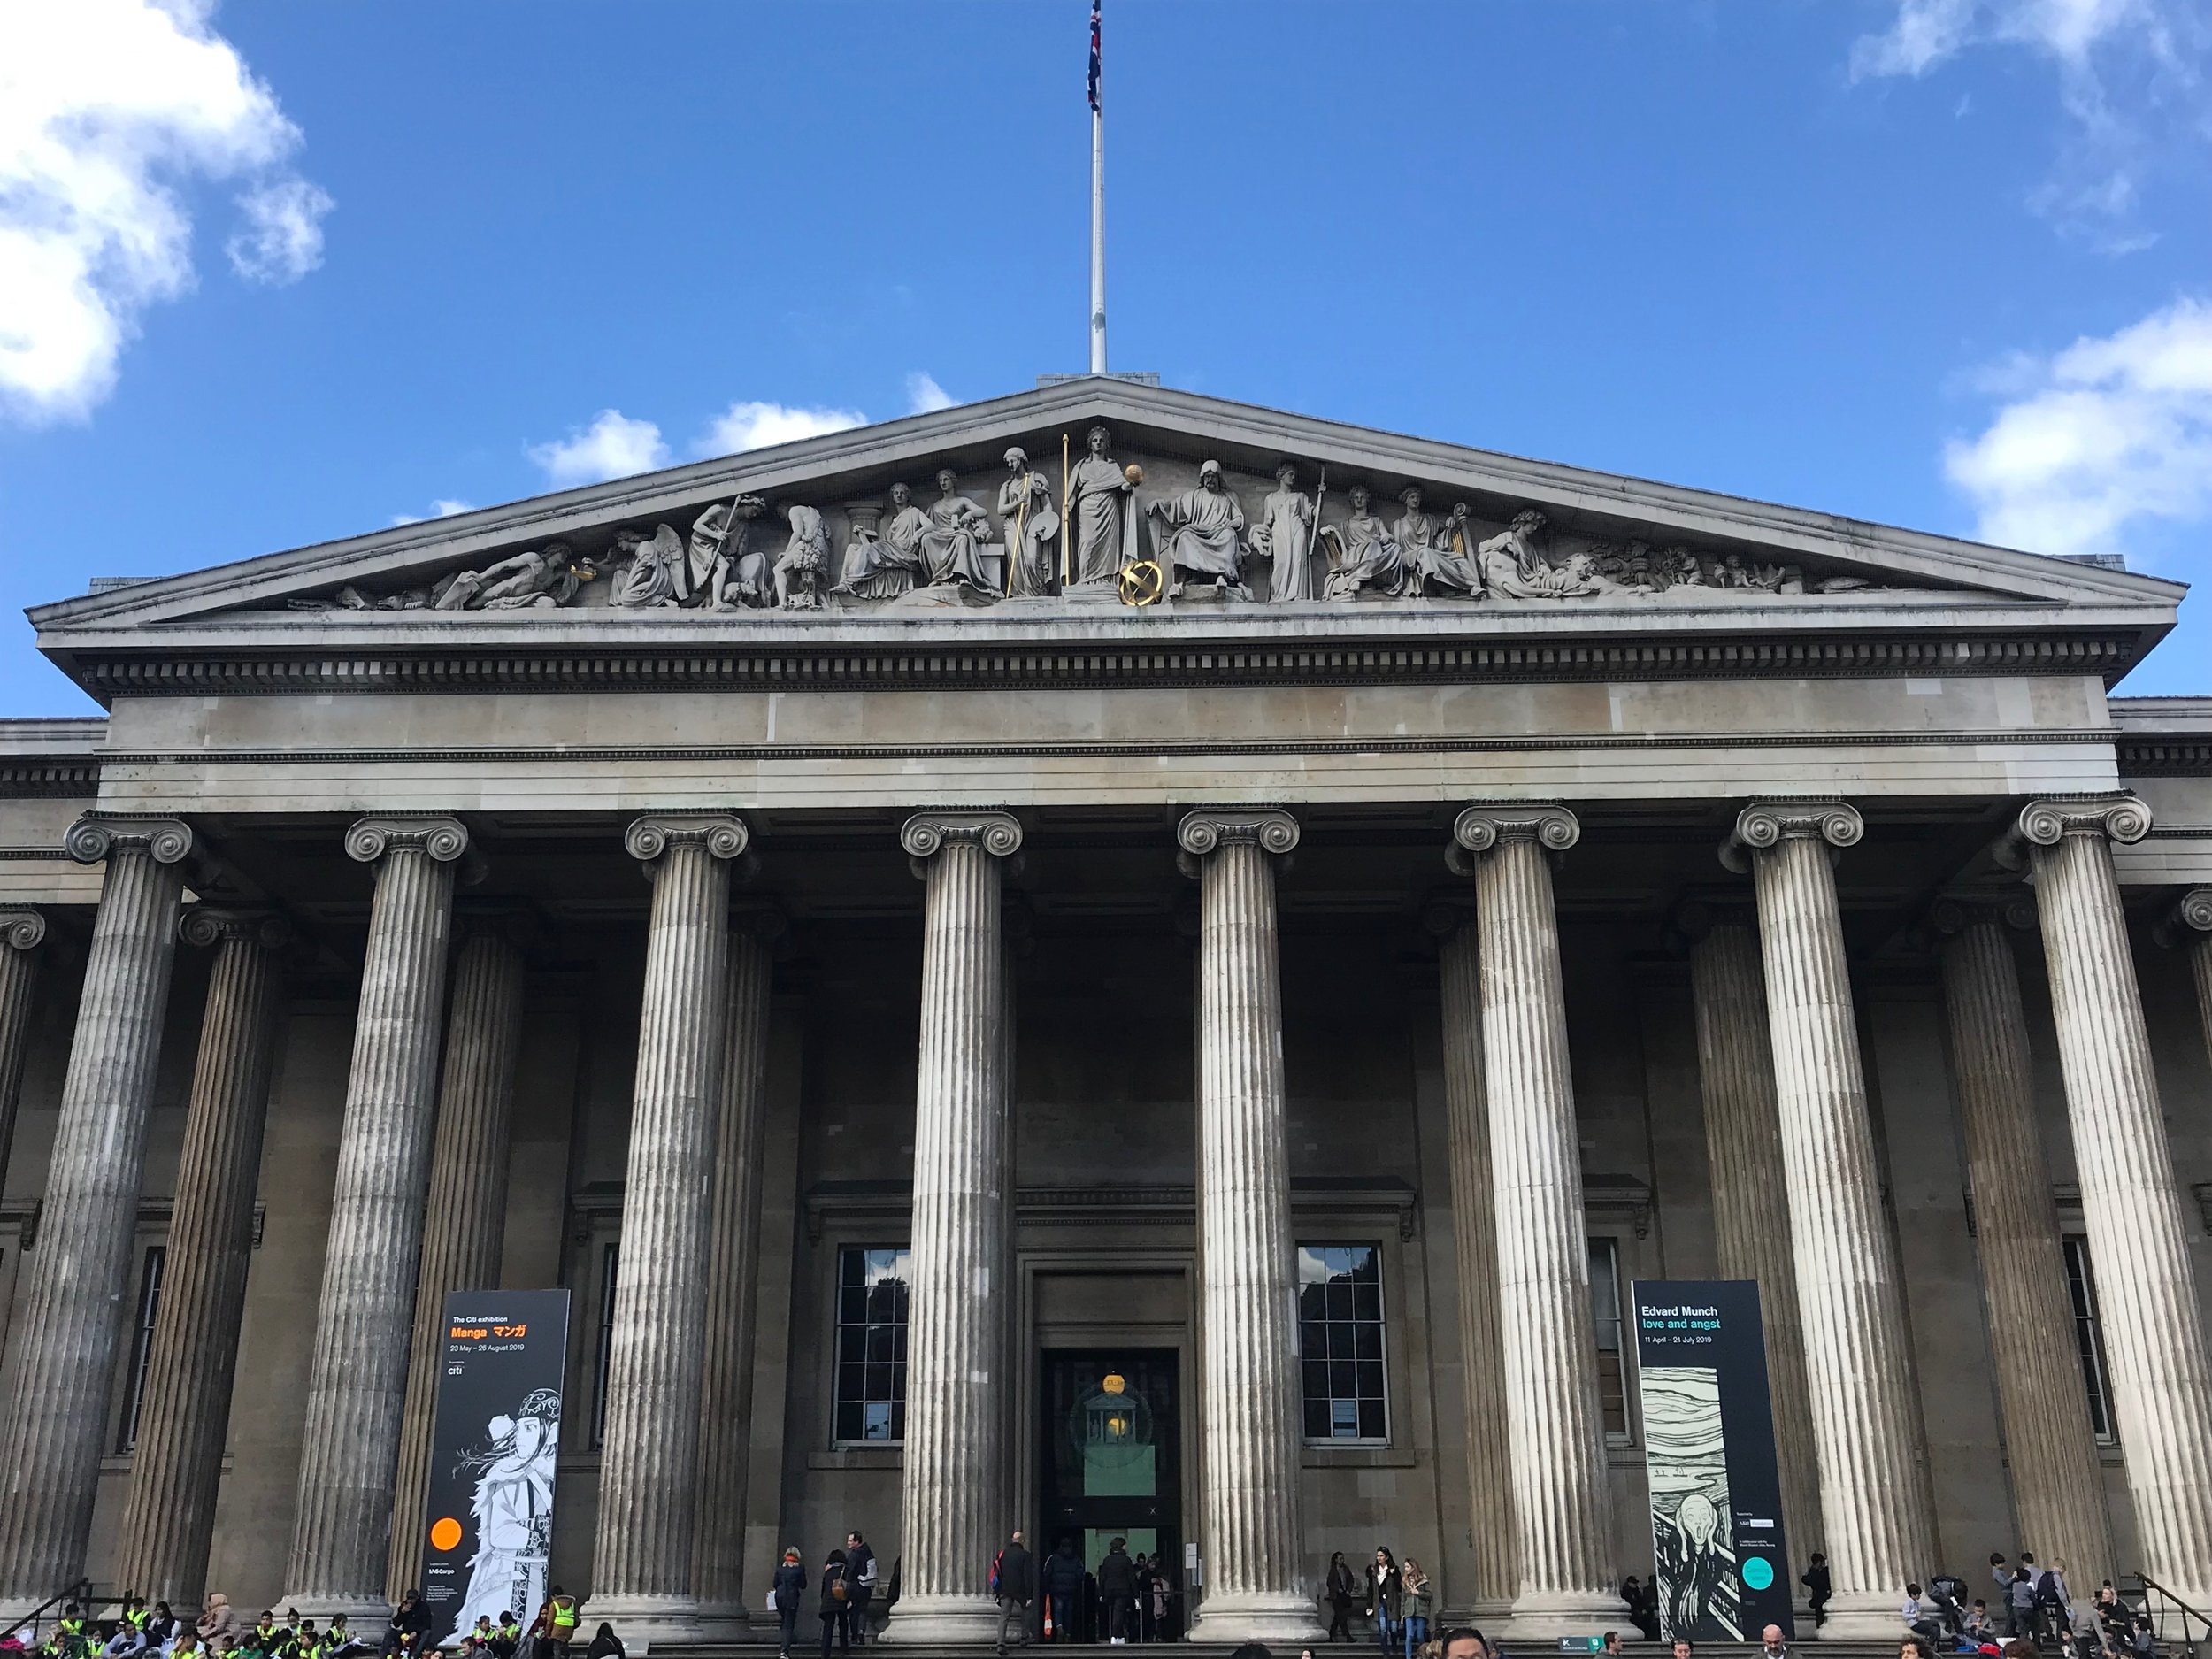 Things to do in London - British Museum